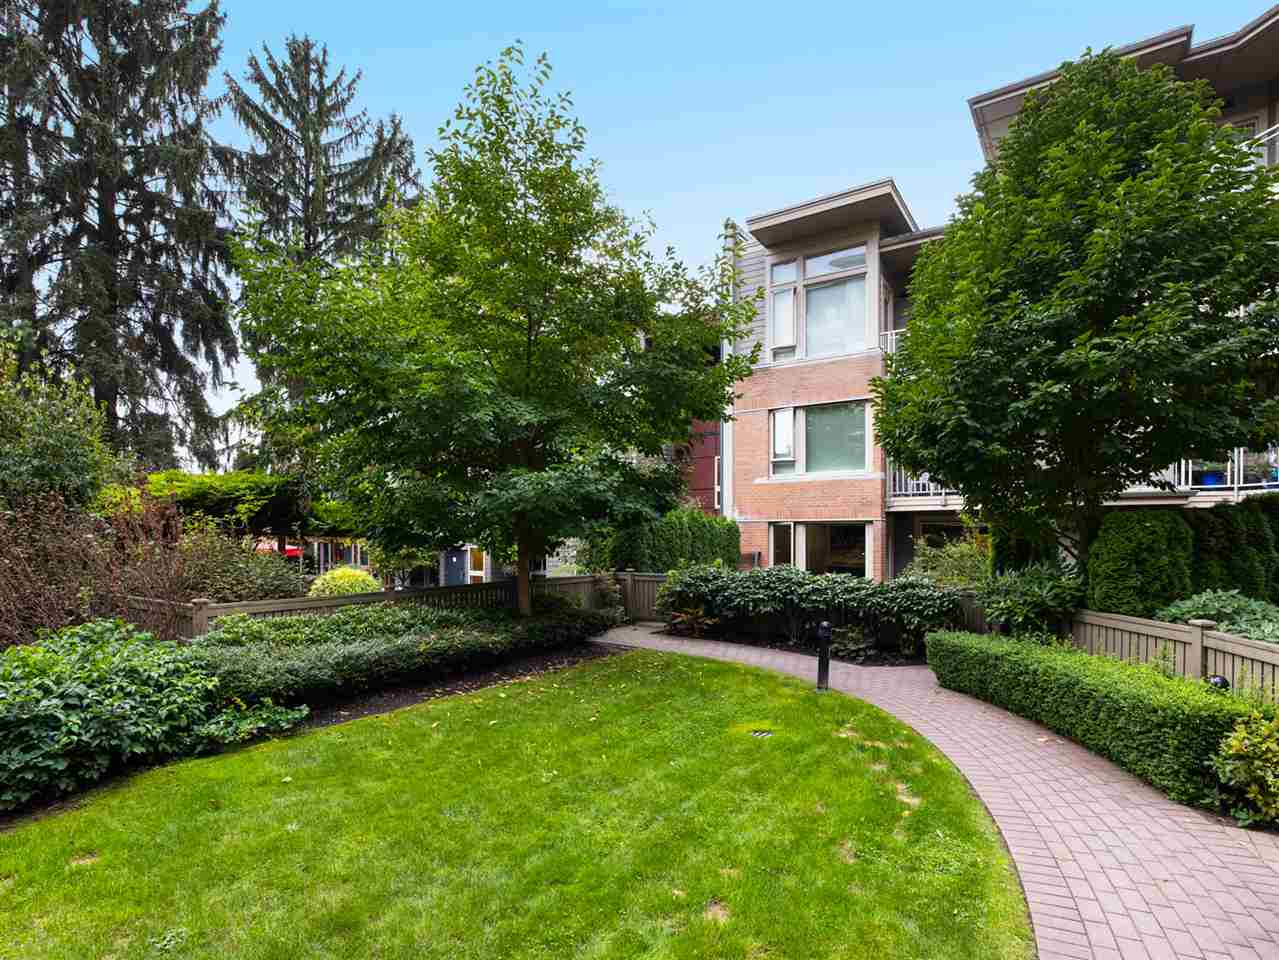 102 159 W 22ND STREET - Central Lonsdale Apartment/Condo for sale, 1 Bedroom (R2502448) - #11